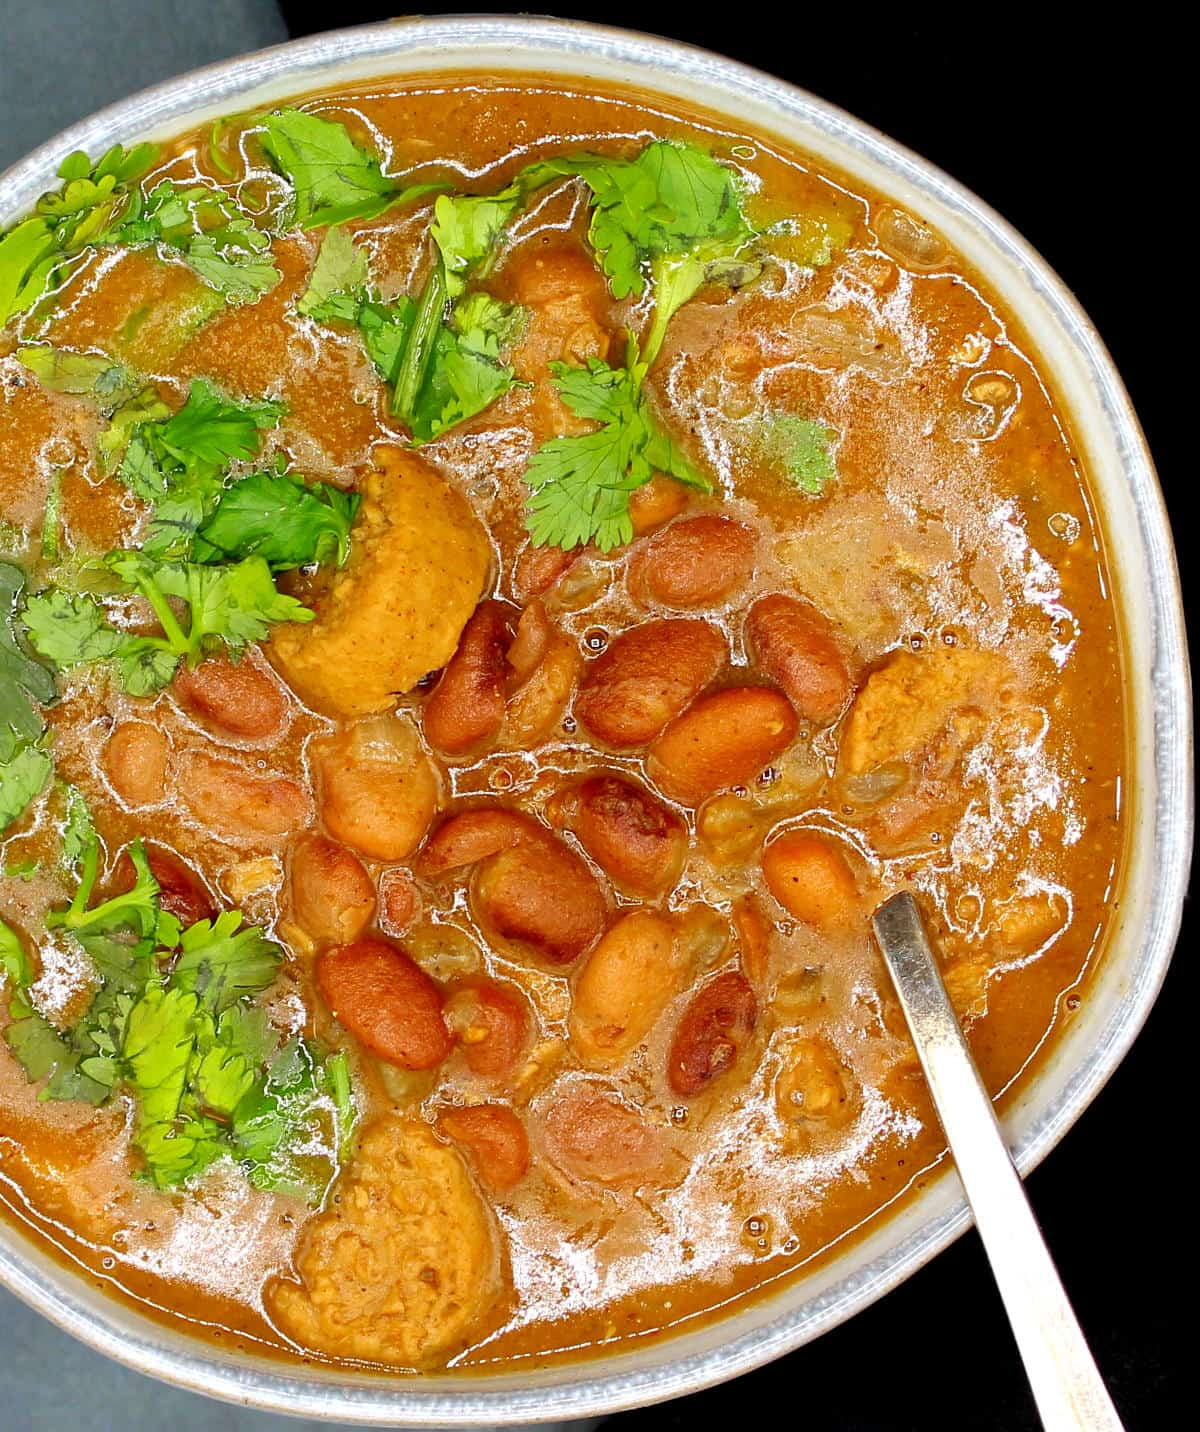 Photo of vegan Goan Feijoada in a ceramic bowl with sausages, pinto beans and cilantro.